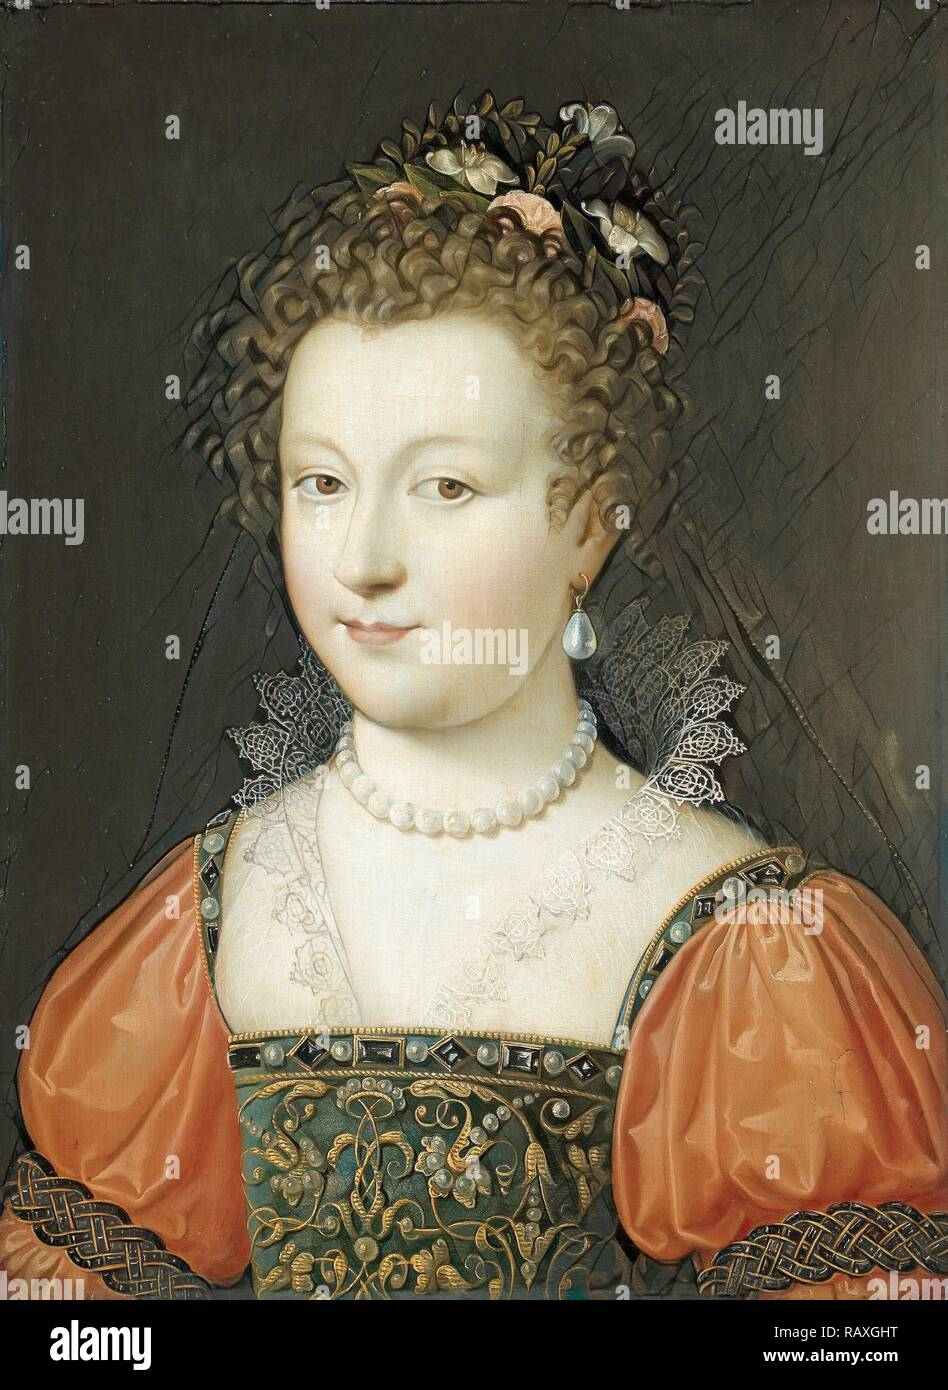 Portrait of a Woman (previously identified as Queen Elizabeth I), Anonymous, 1550 - 1574. Reimagined - Stock Image